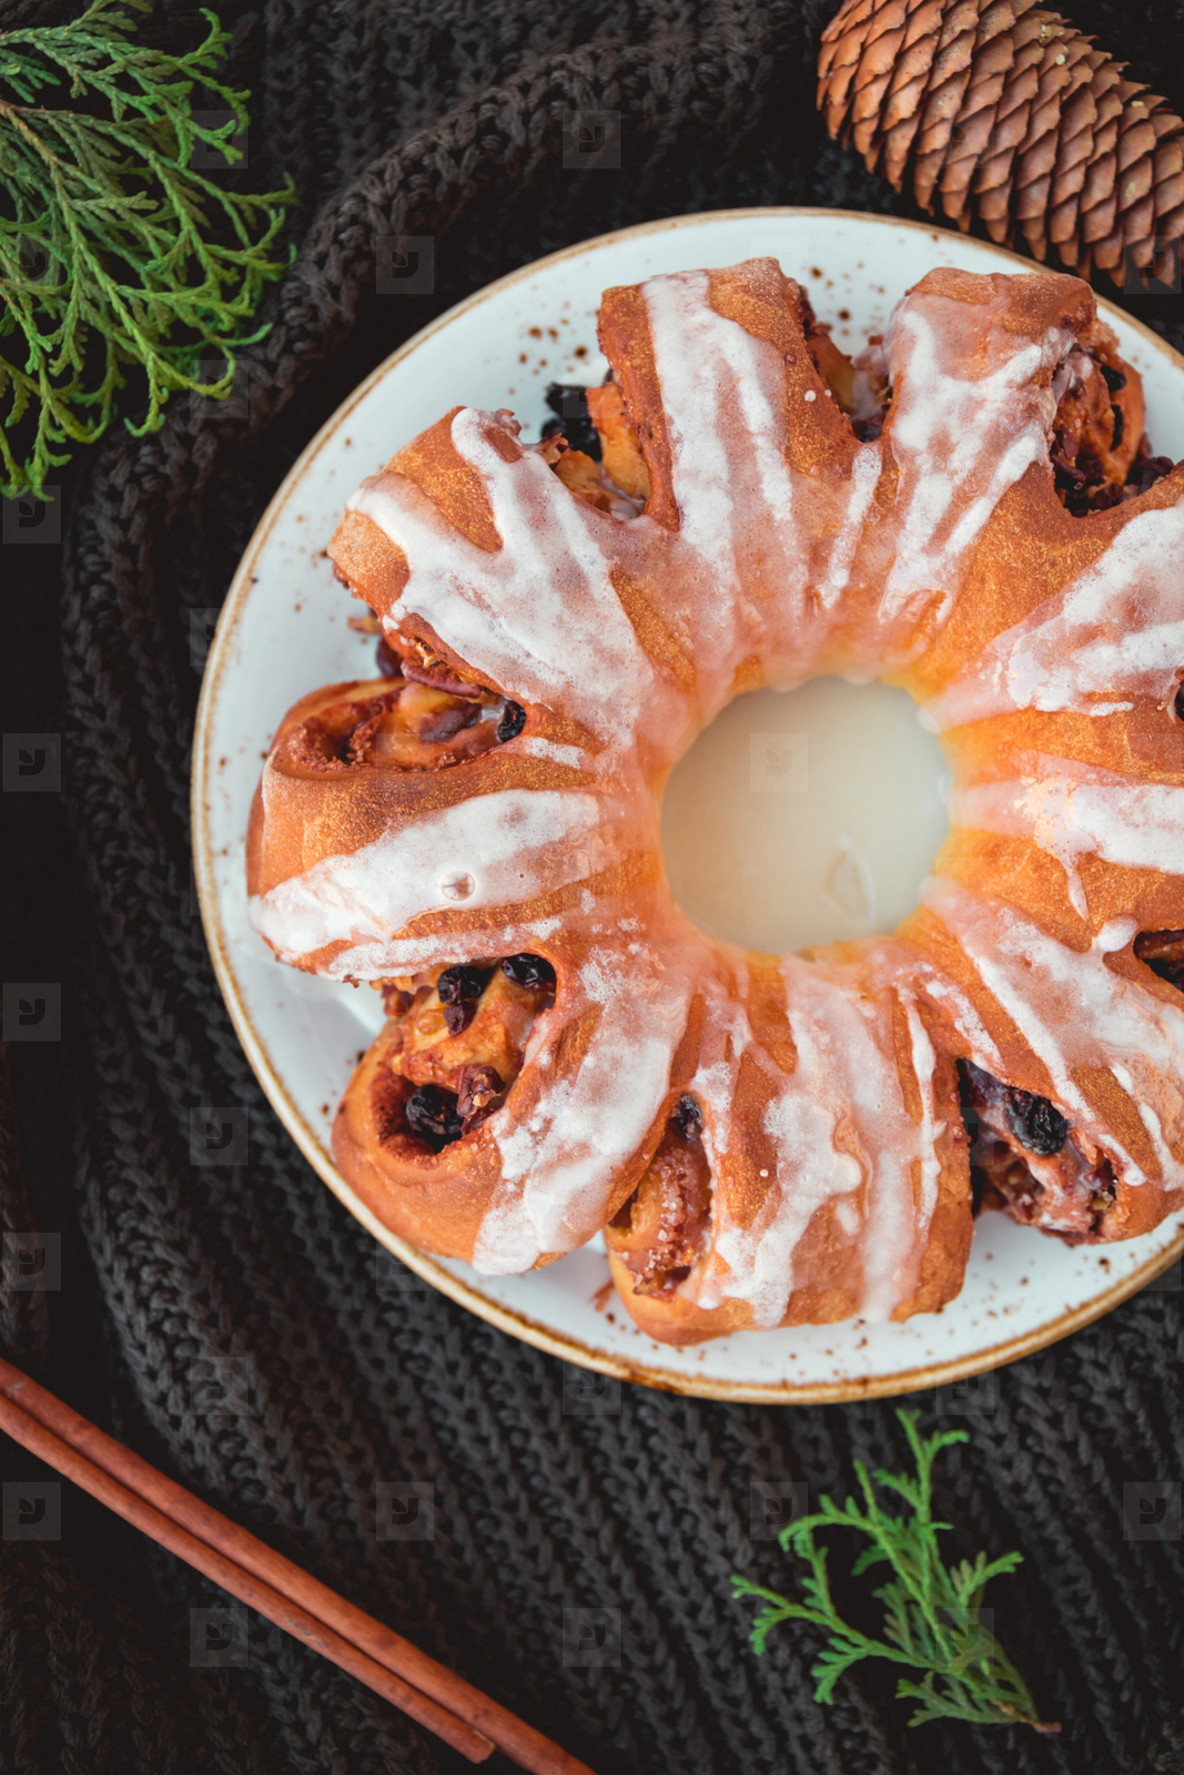 Creative flat lay  top view of Swedish tea ring Christmas cake with cinnamon  pecans and raisins on a warm knitted sweater  The concept of cozy winter Holidays and homemade bakery